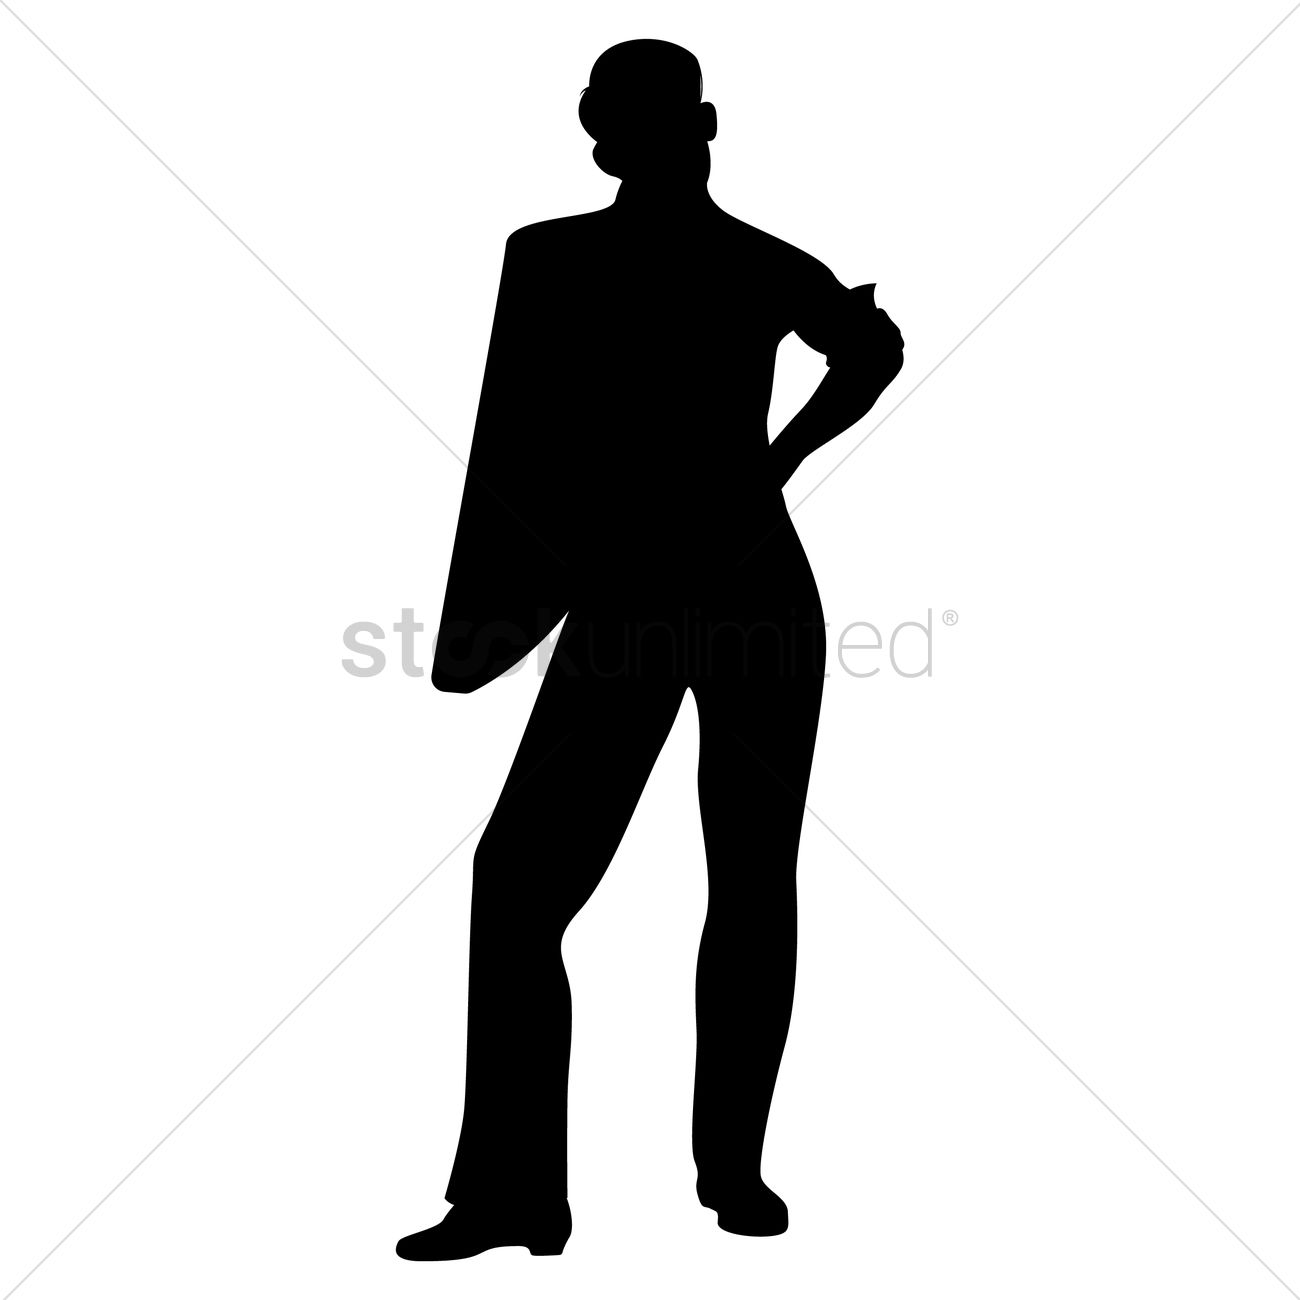 mypuzzledesign business man standing silhouette in - HD 1300×1300